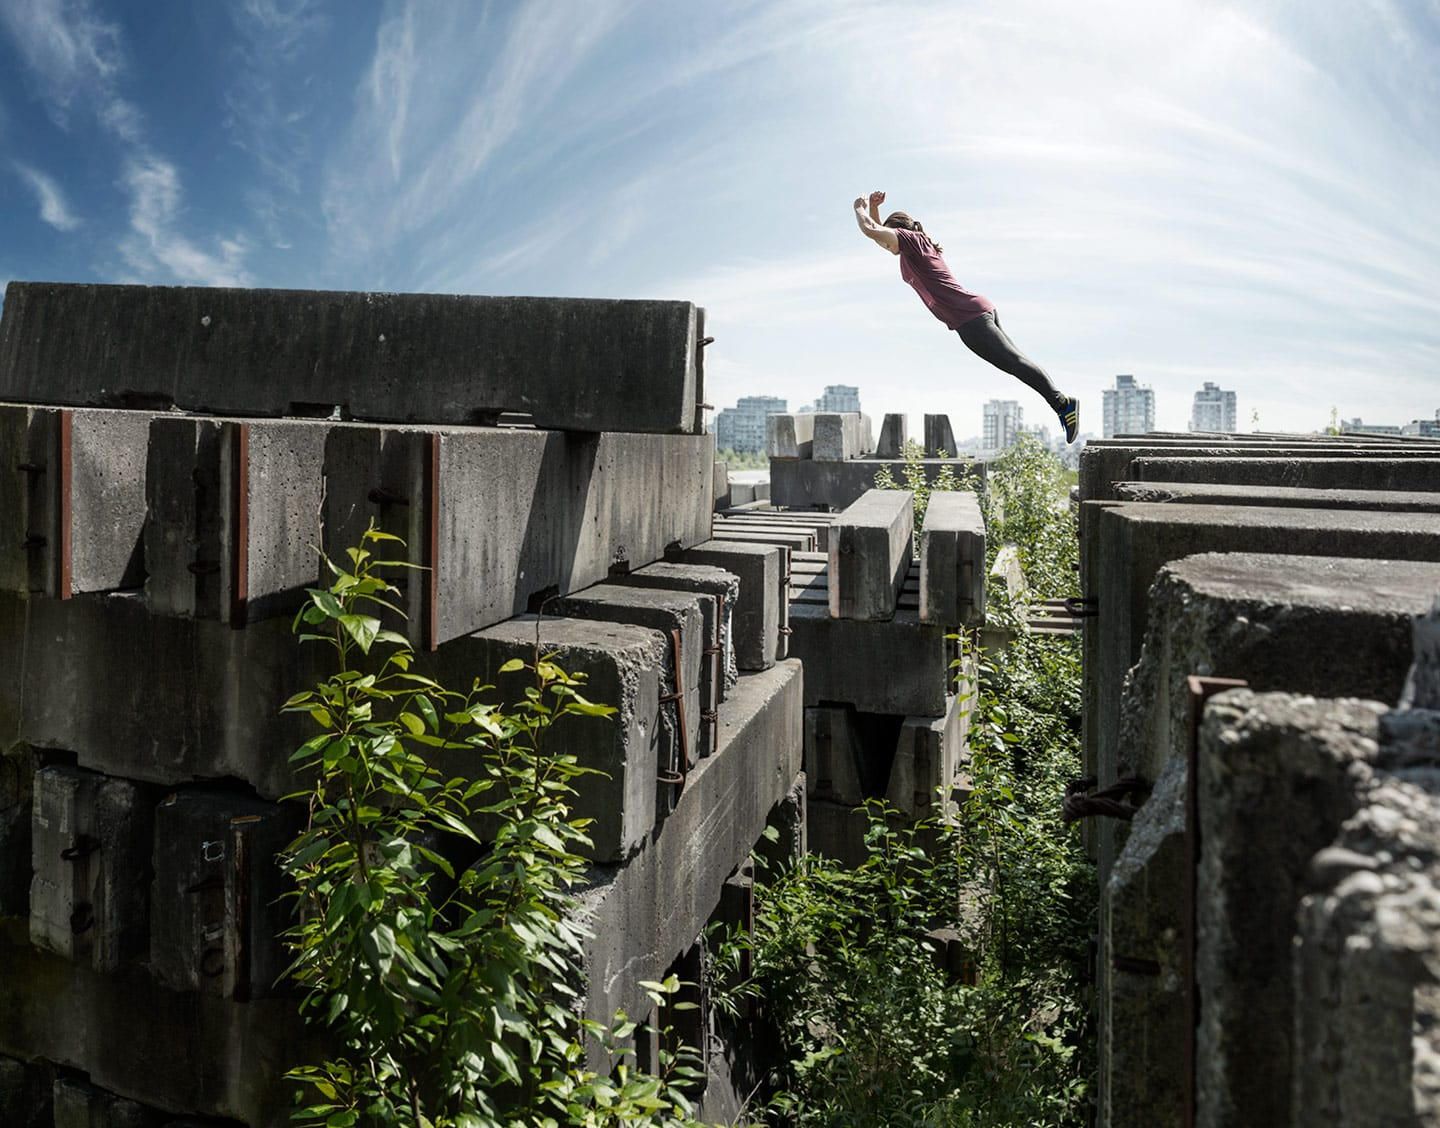 Parkour Athlete Arms Crossed Angled Jump Concrete Walls Background Bright Skies